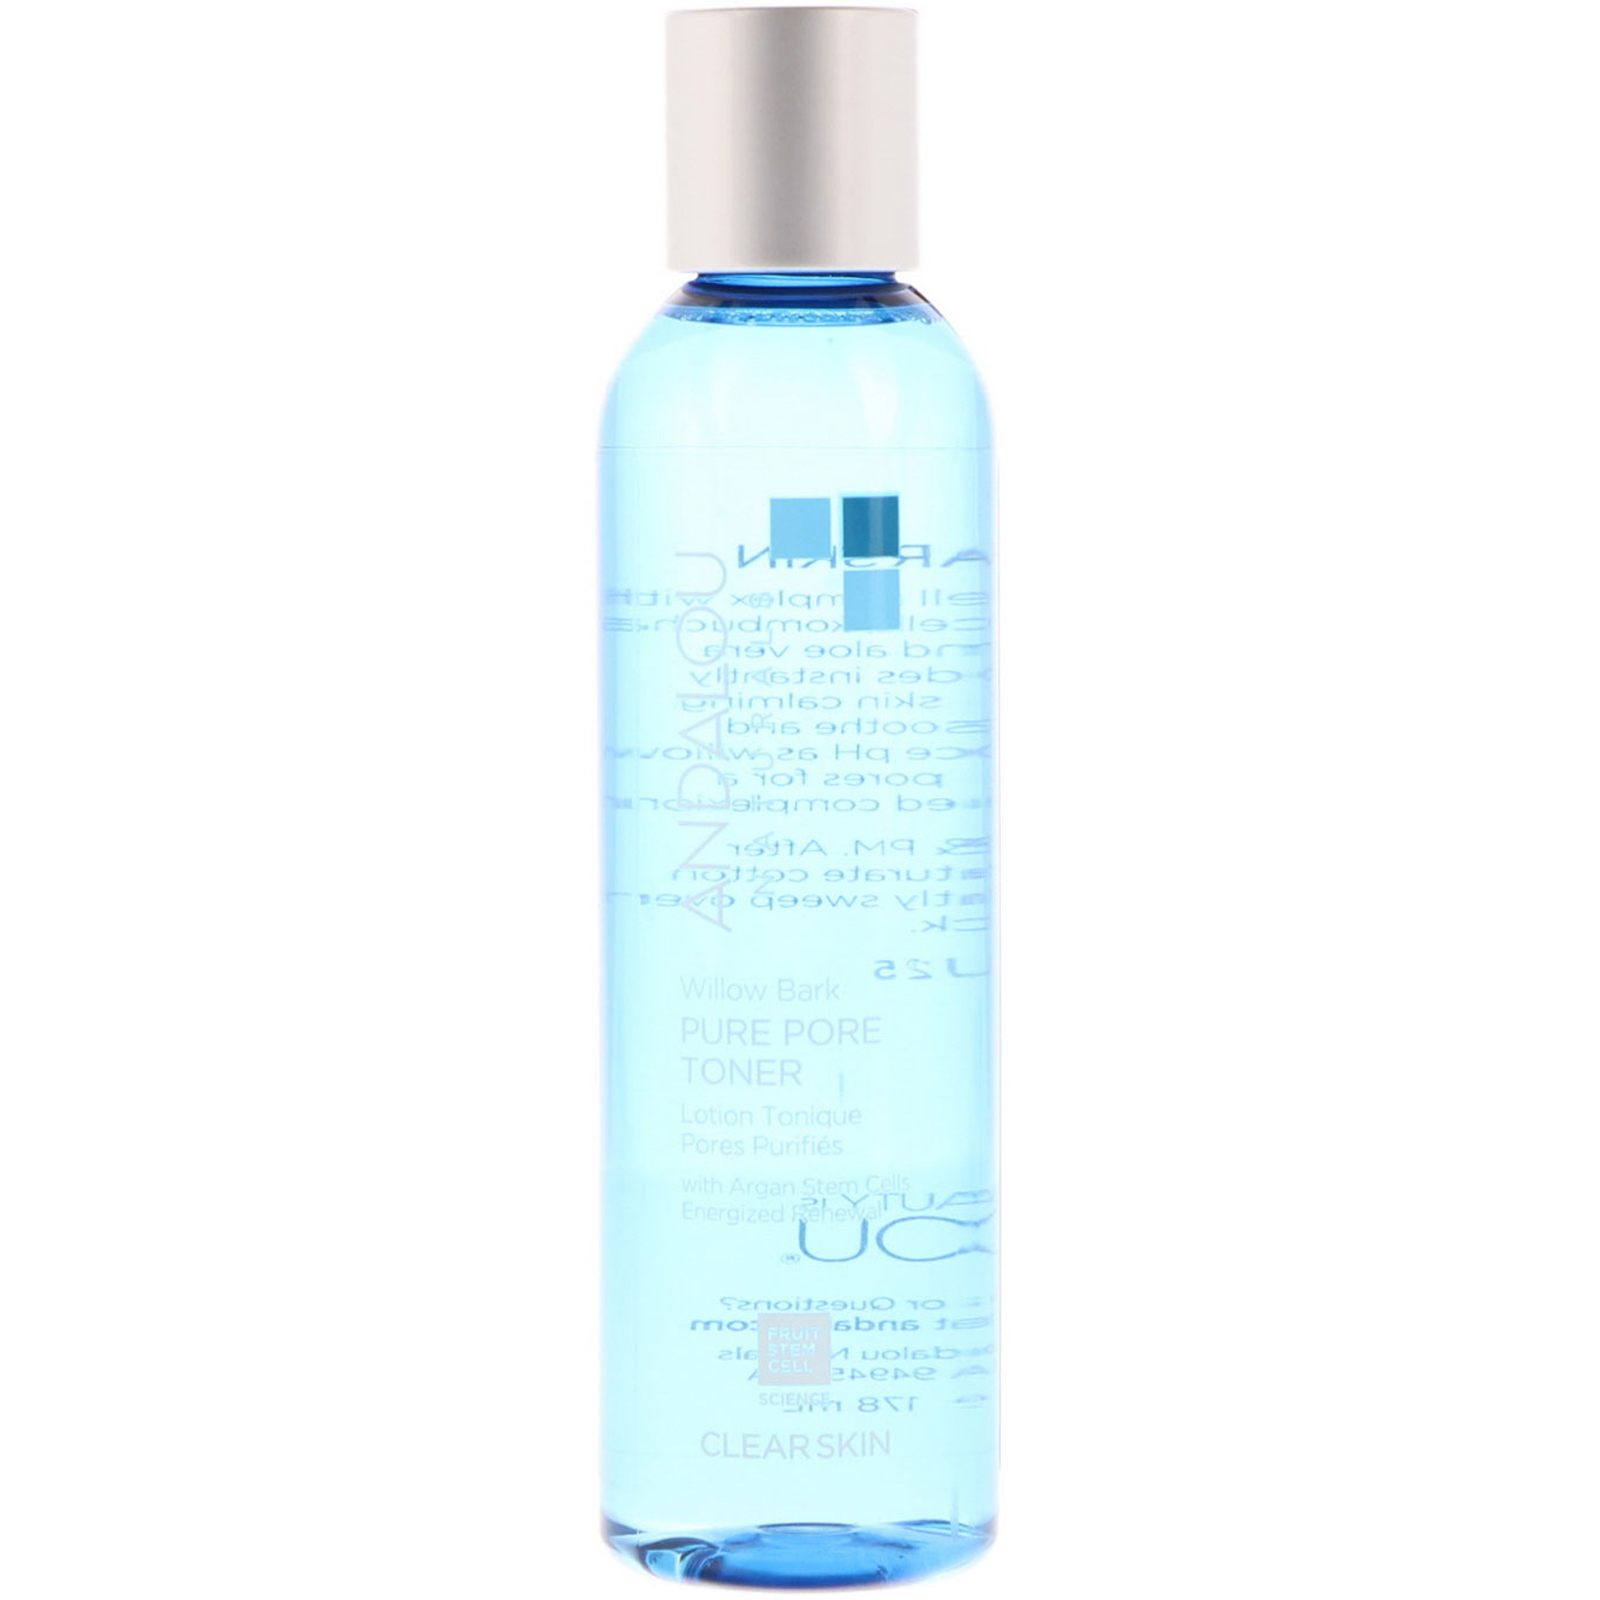 Will Bark Pure Pore Toner - 6 oz. by Andalou Naturals (pack of 3) Bliss - Clog Dissolving Cleansing Milk - 473ml/16oz